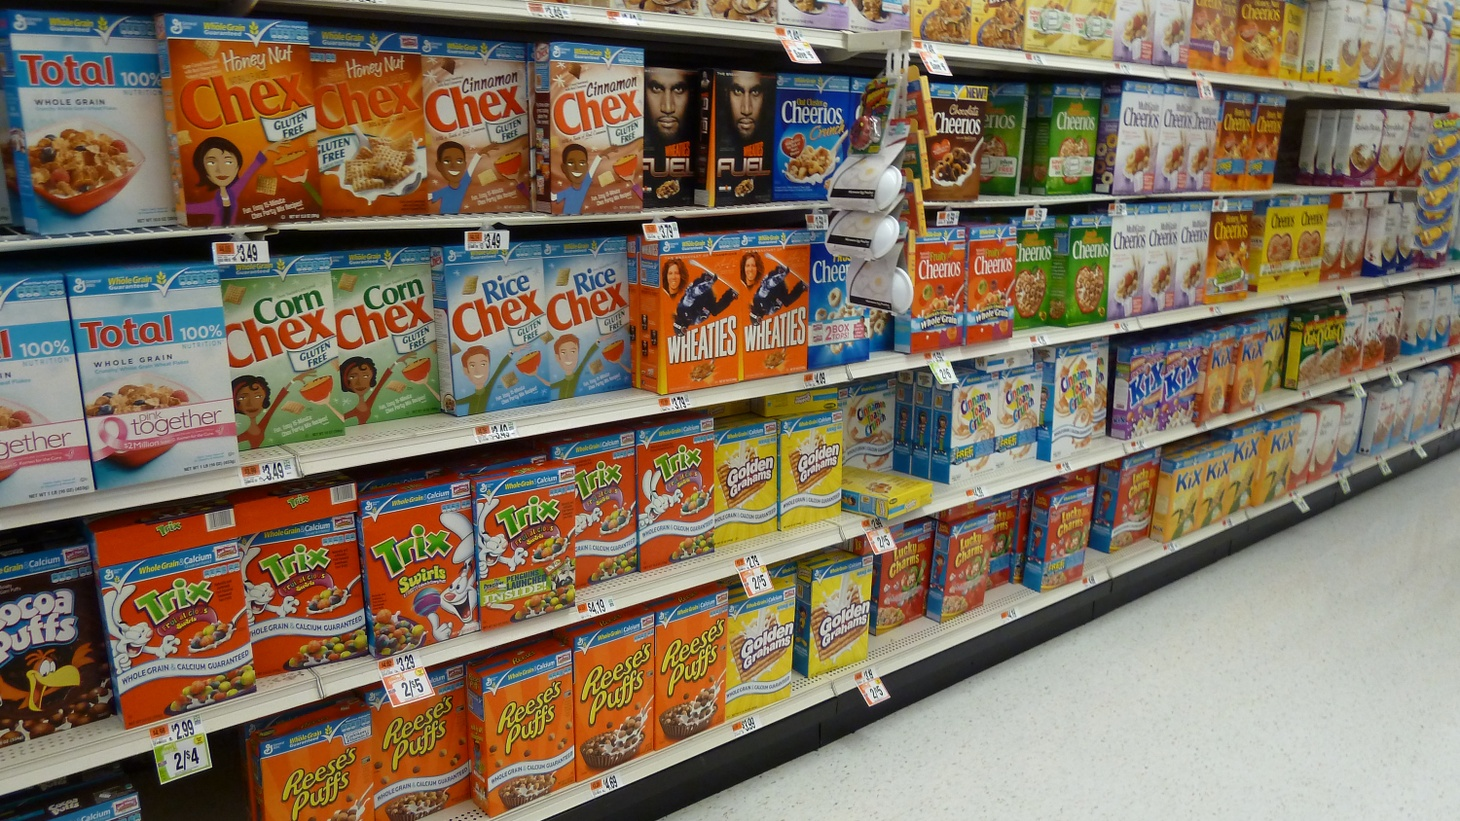 A lot of unlikely food products include more sugar than occurs naturally -- including deli meats, bread and trail mix. Now the FDA wants labels to specify how much sugar is added — and that has the food industry up in arms. Why doesn't it want consumers to know?